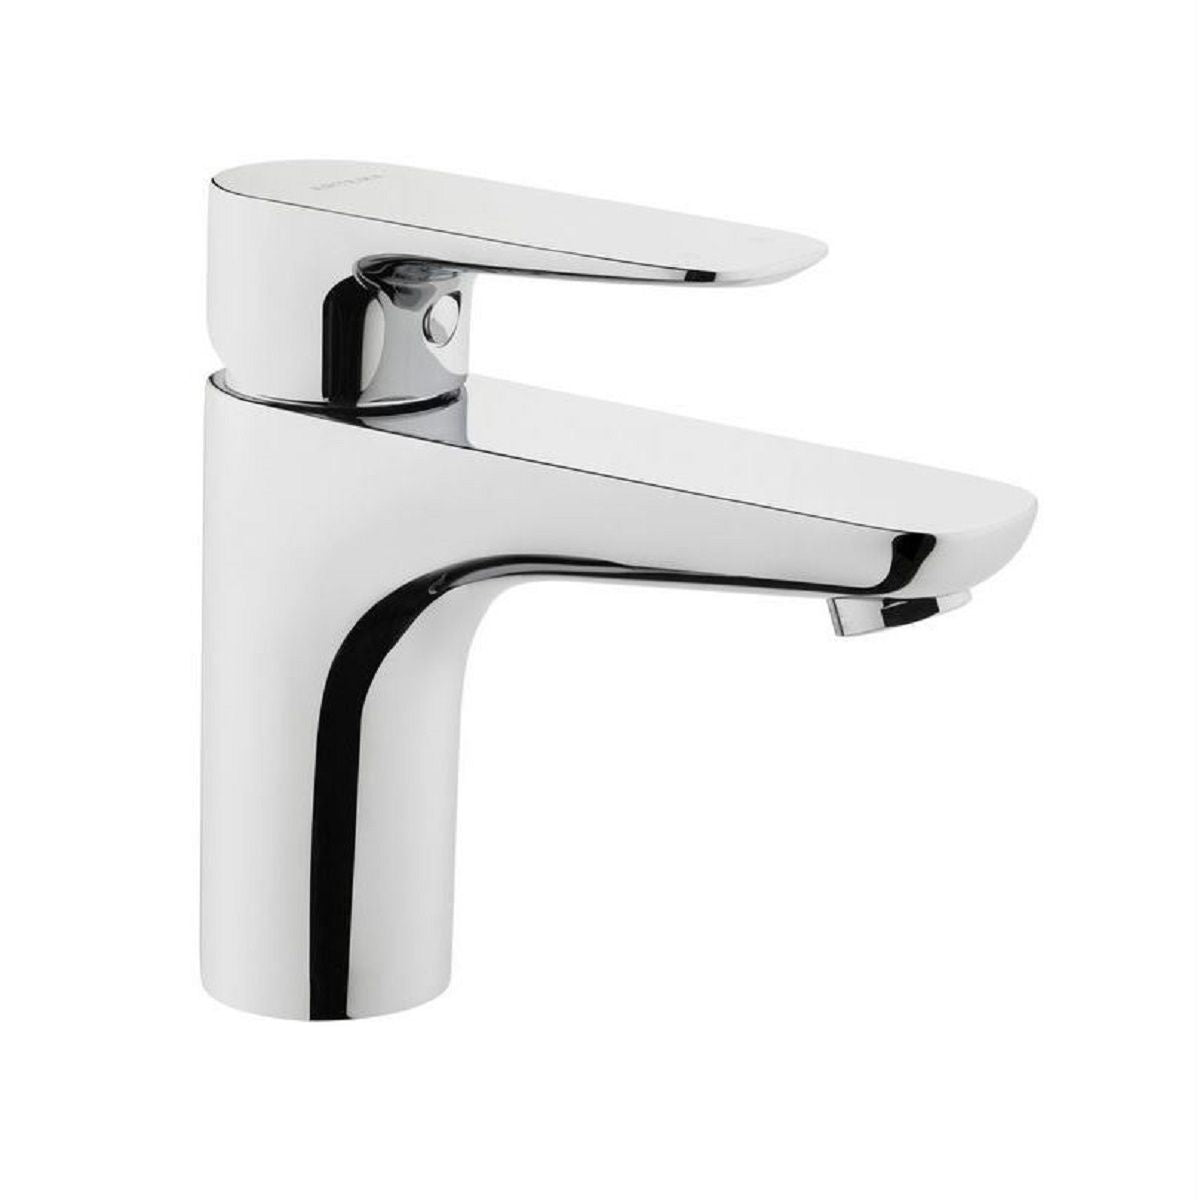 X-Line Basin Mixer - Blue Sky Bathrooms Ltd